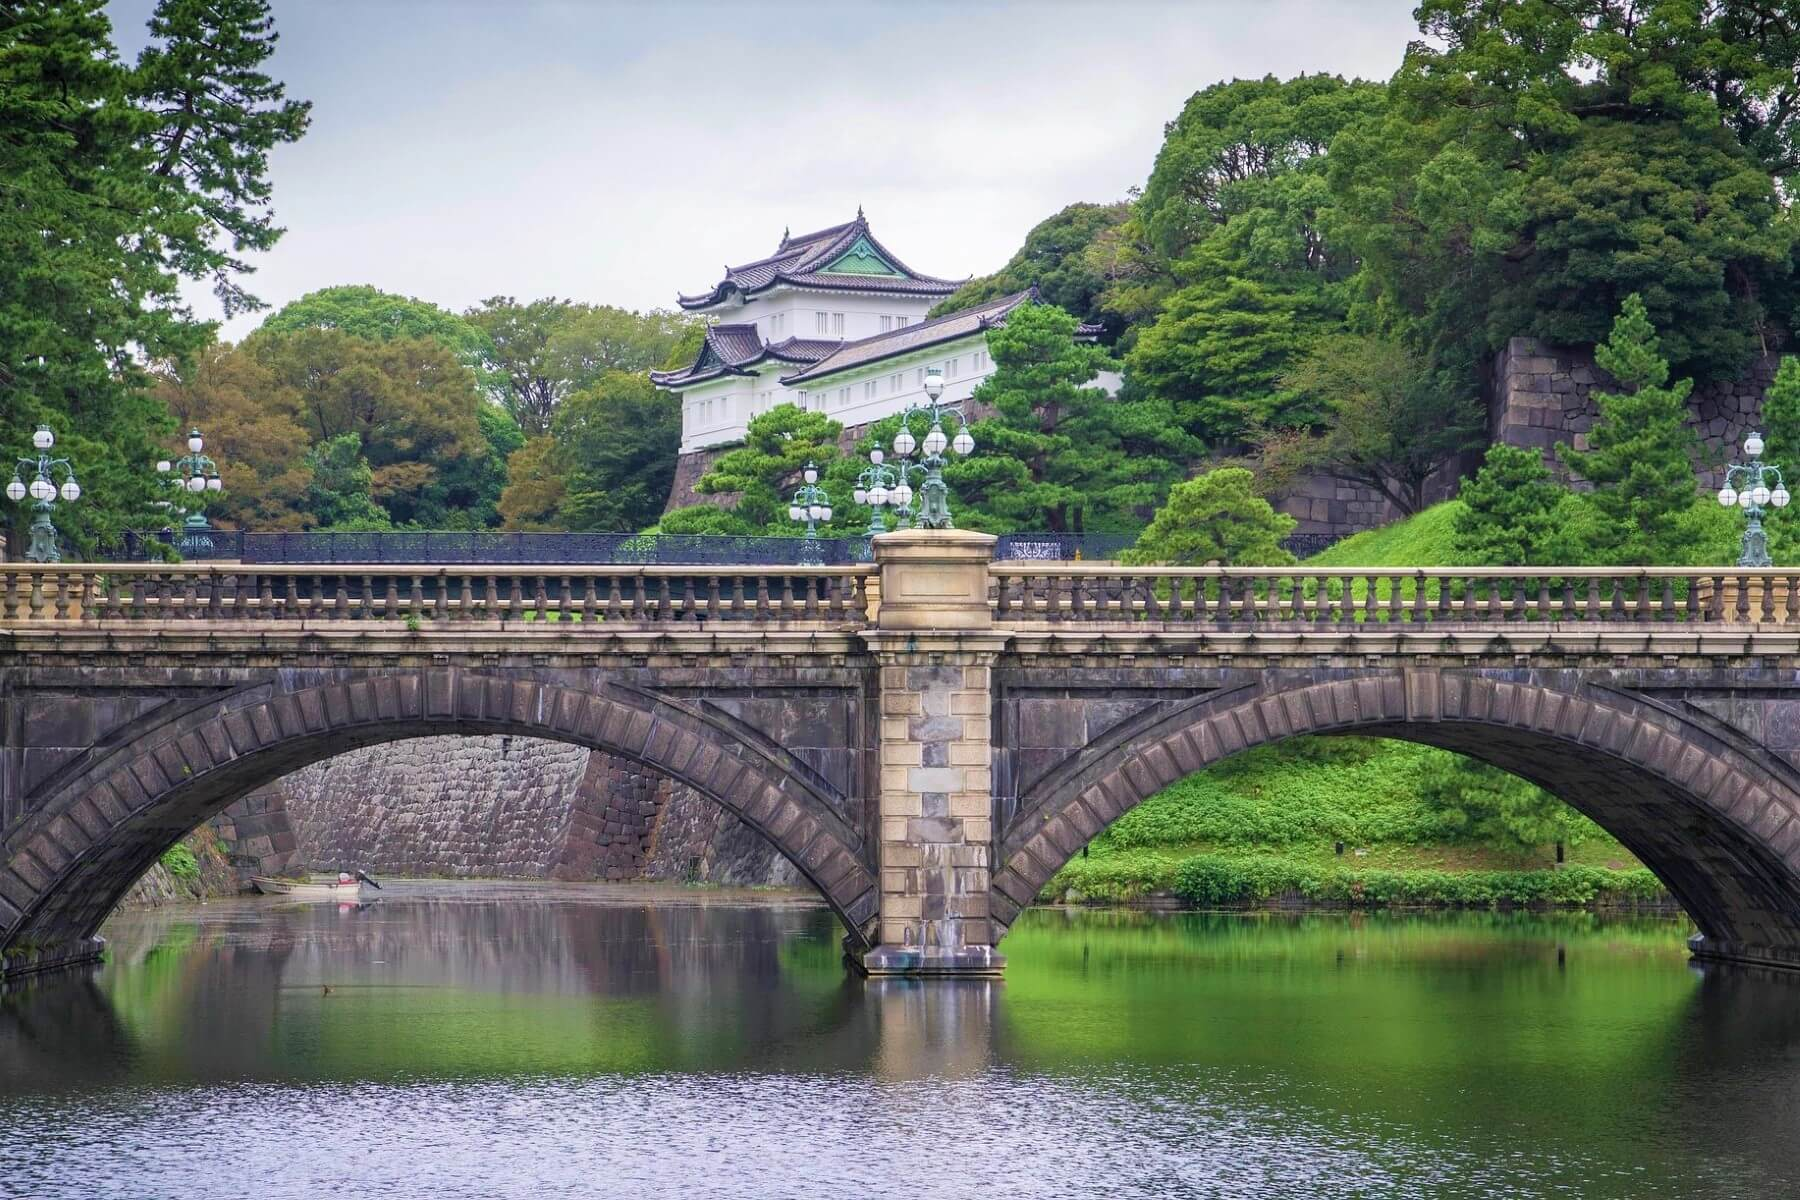 The Imperial Palace in Chiyoda, Tokyo